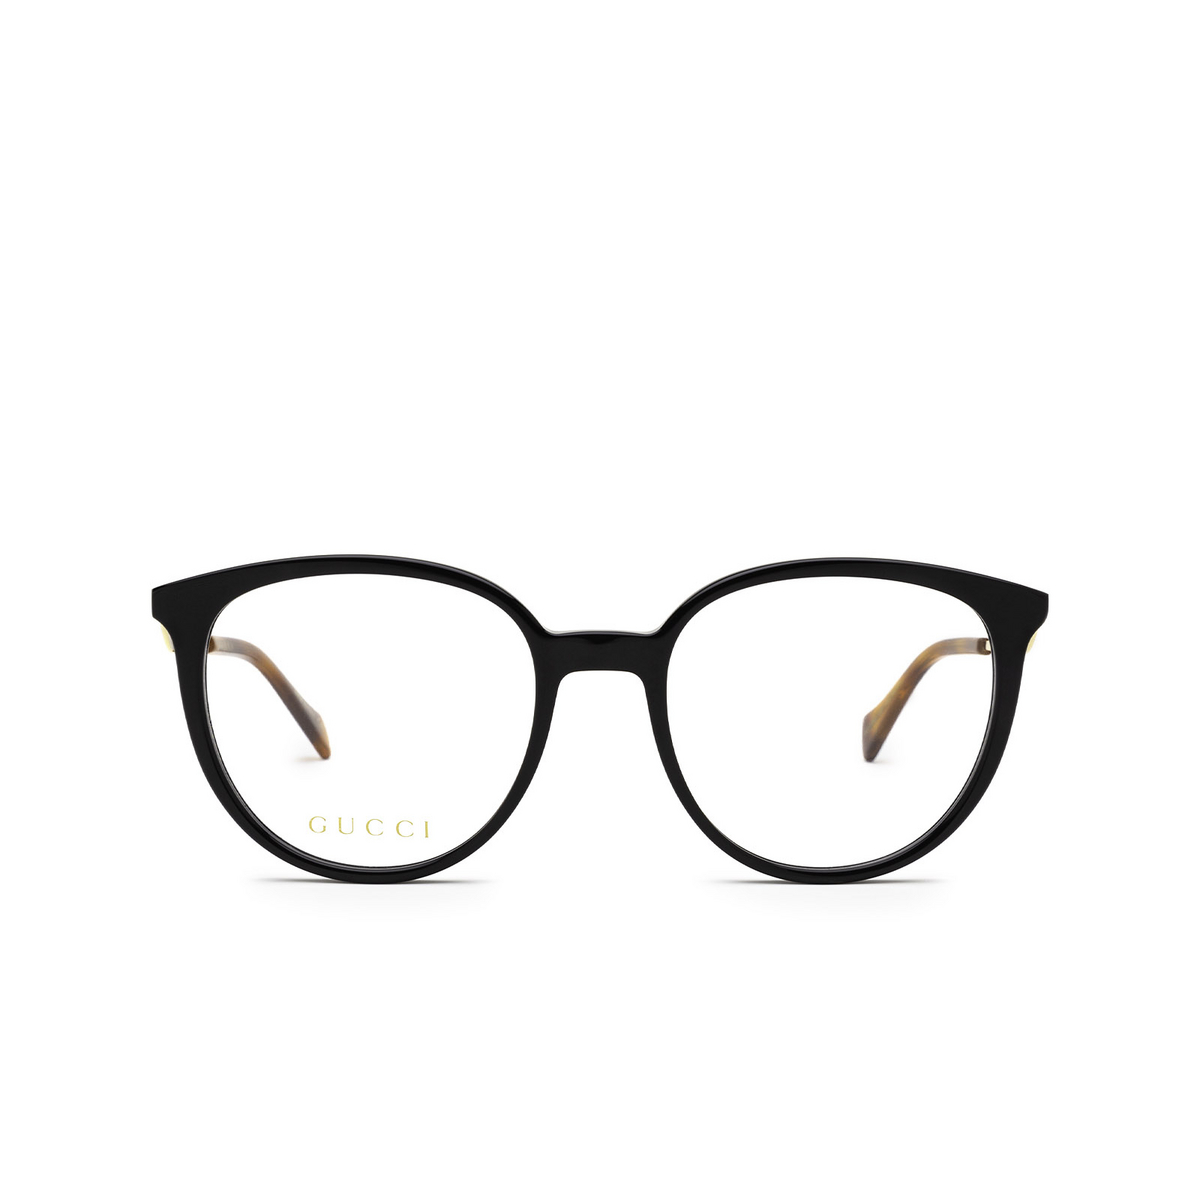 Gucci® Round Eyeglasses: GG1008O color Black 001 - front view.